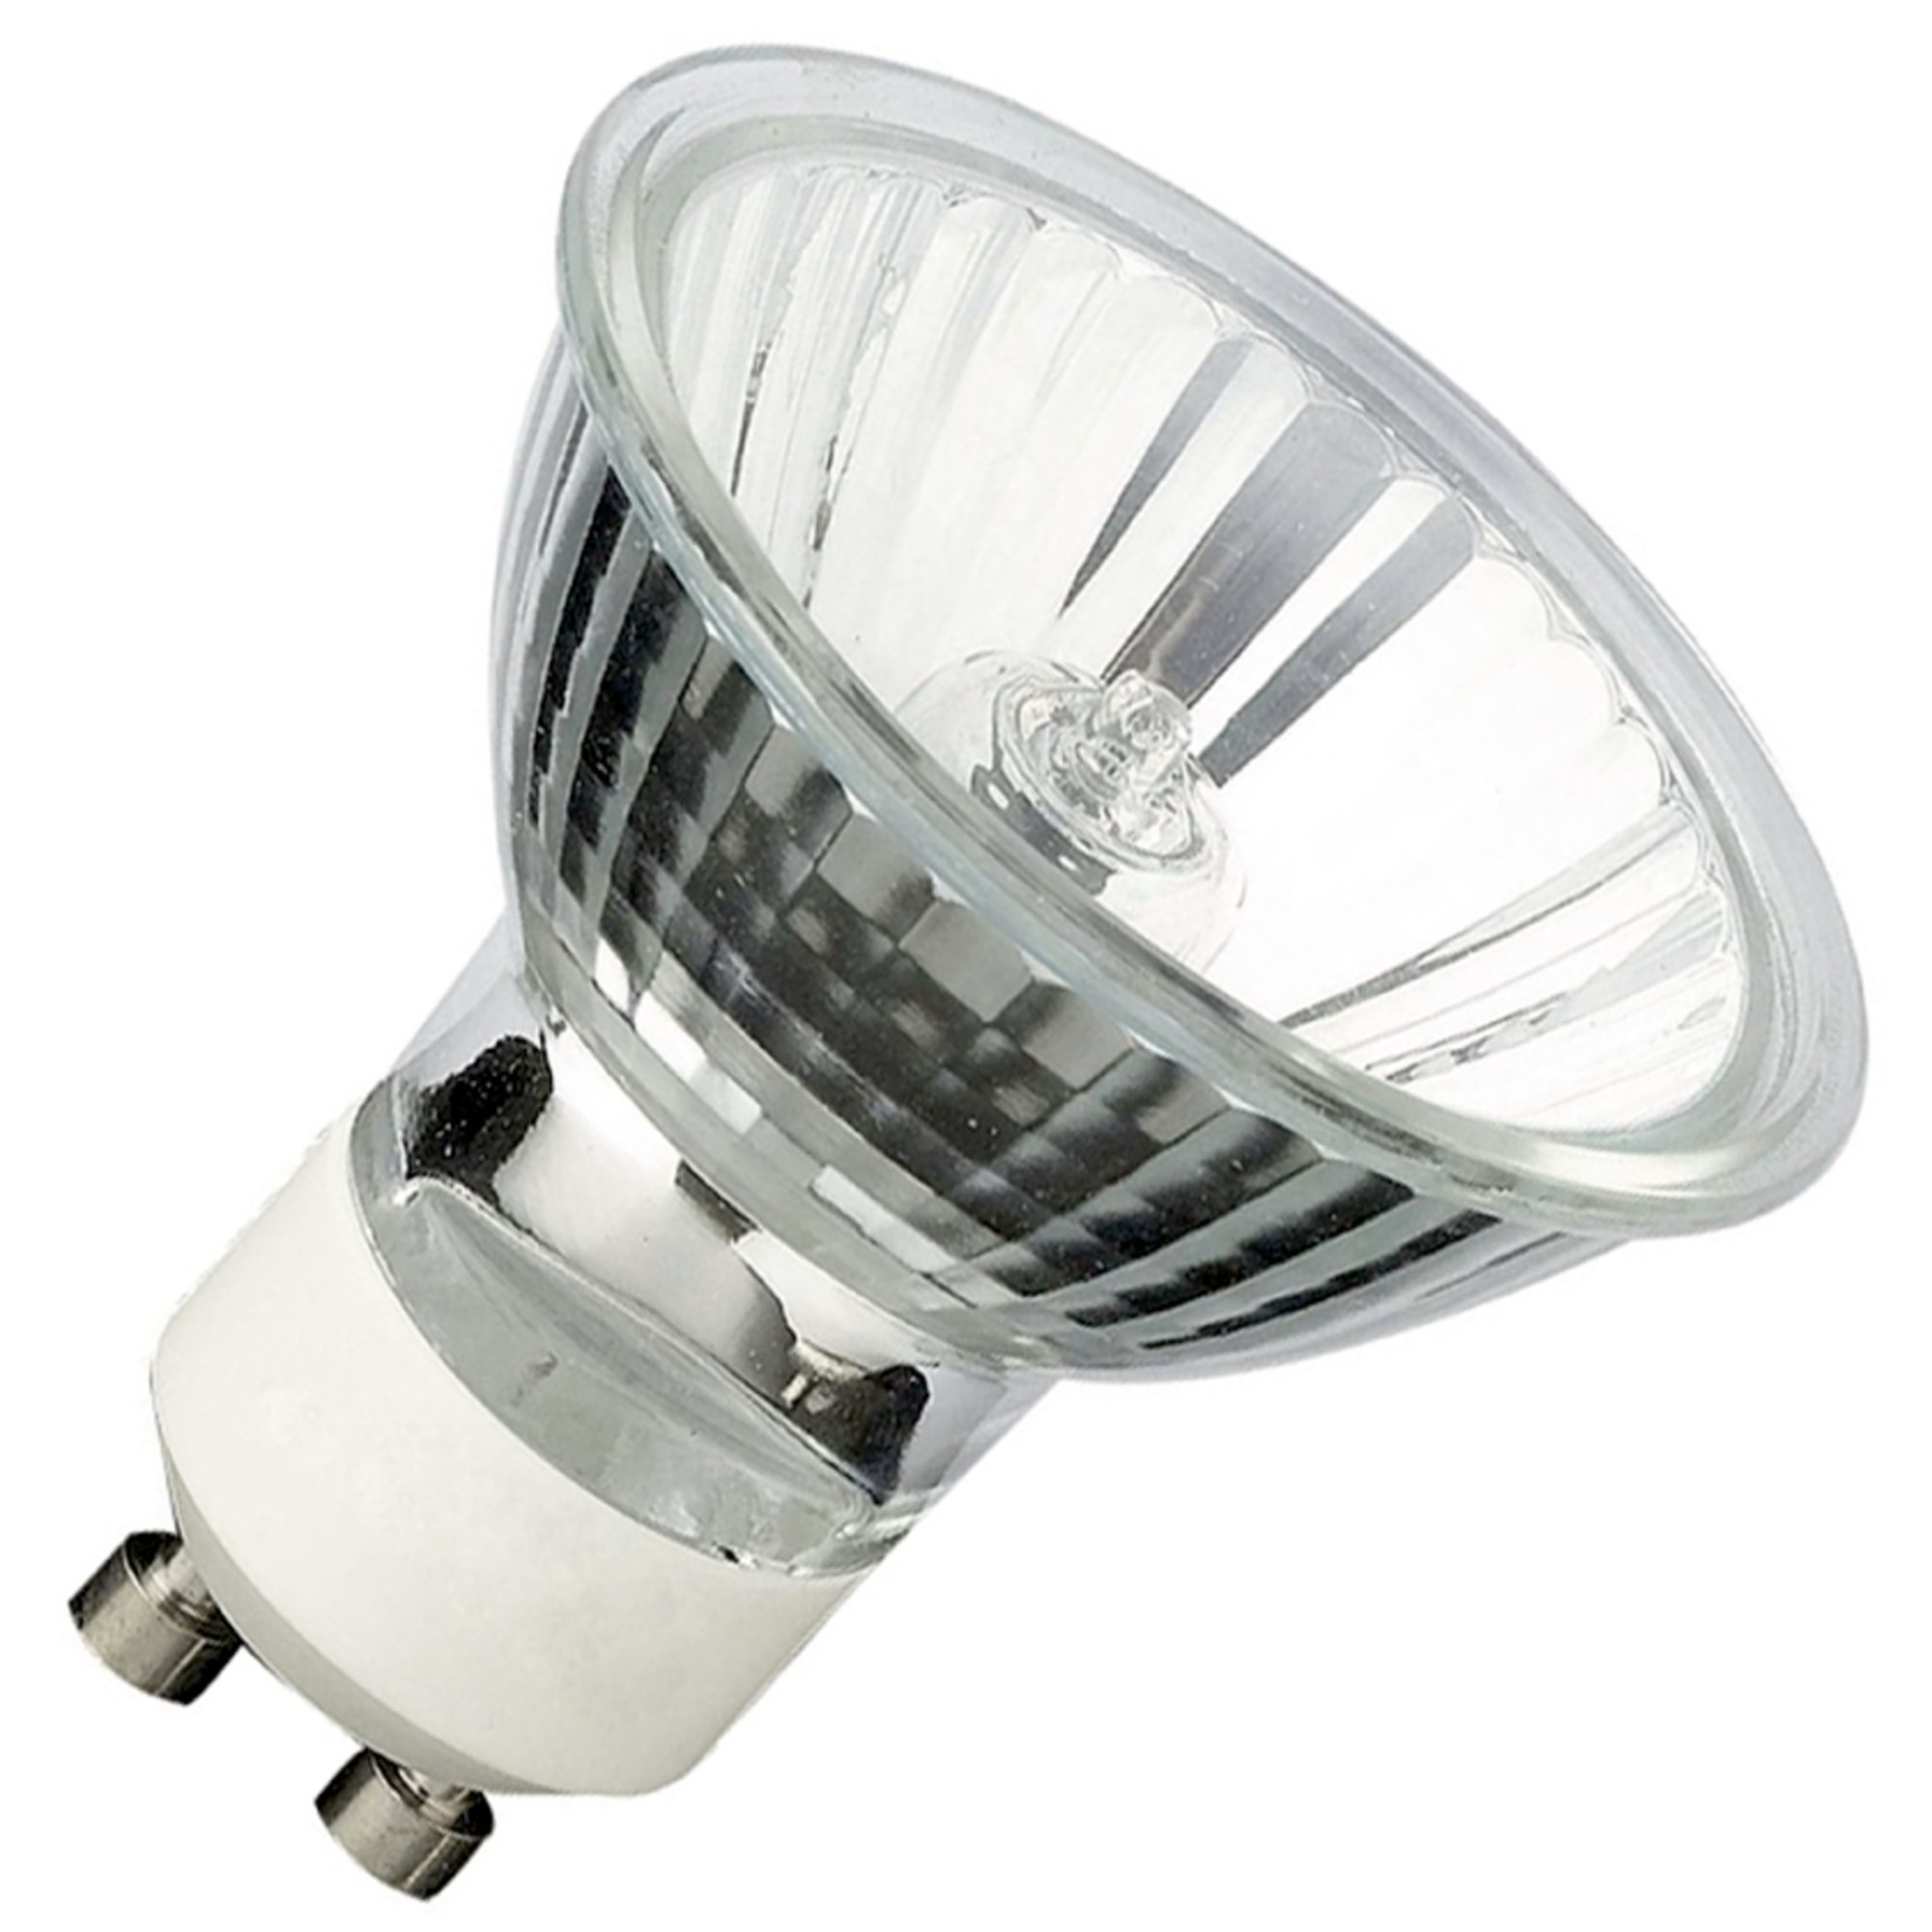 PBB 50 Replacement Bulb - Expired - Fantech